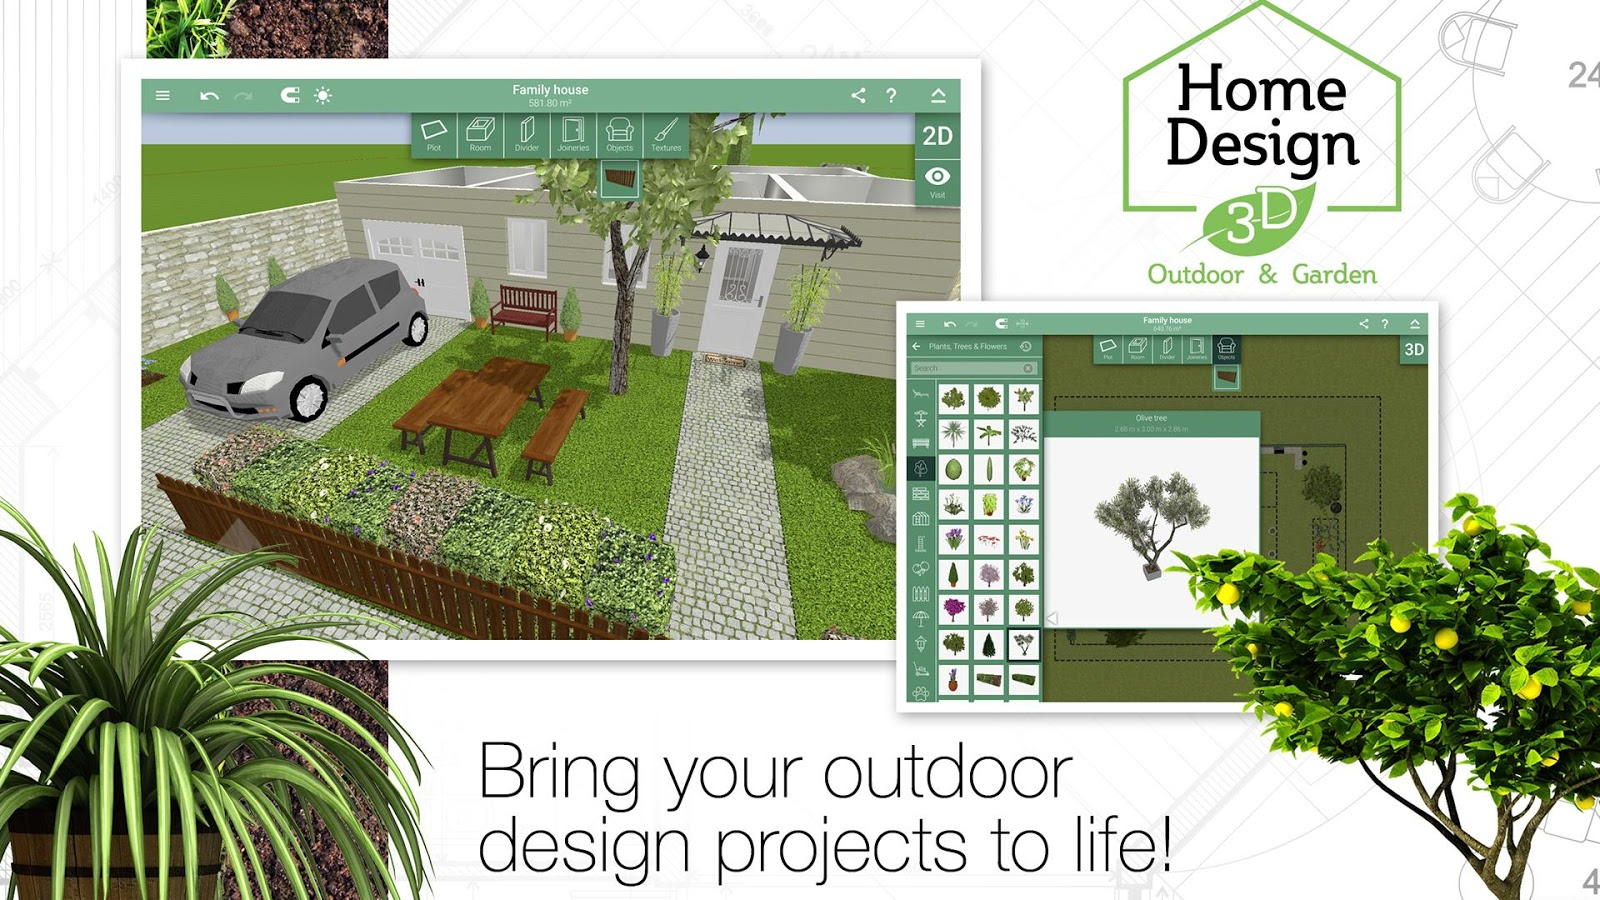 Home design 3d outdoor garden android apps on google play for Outside garden ideas design